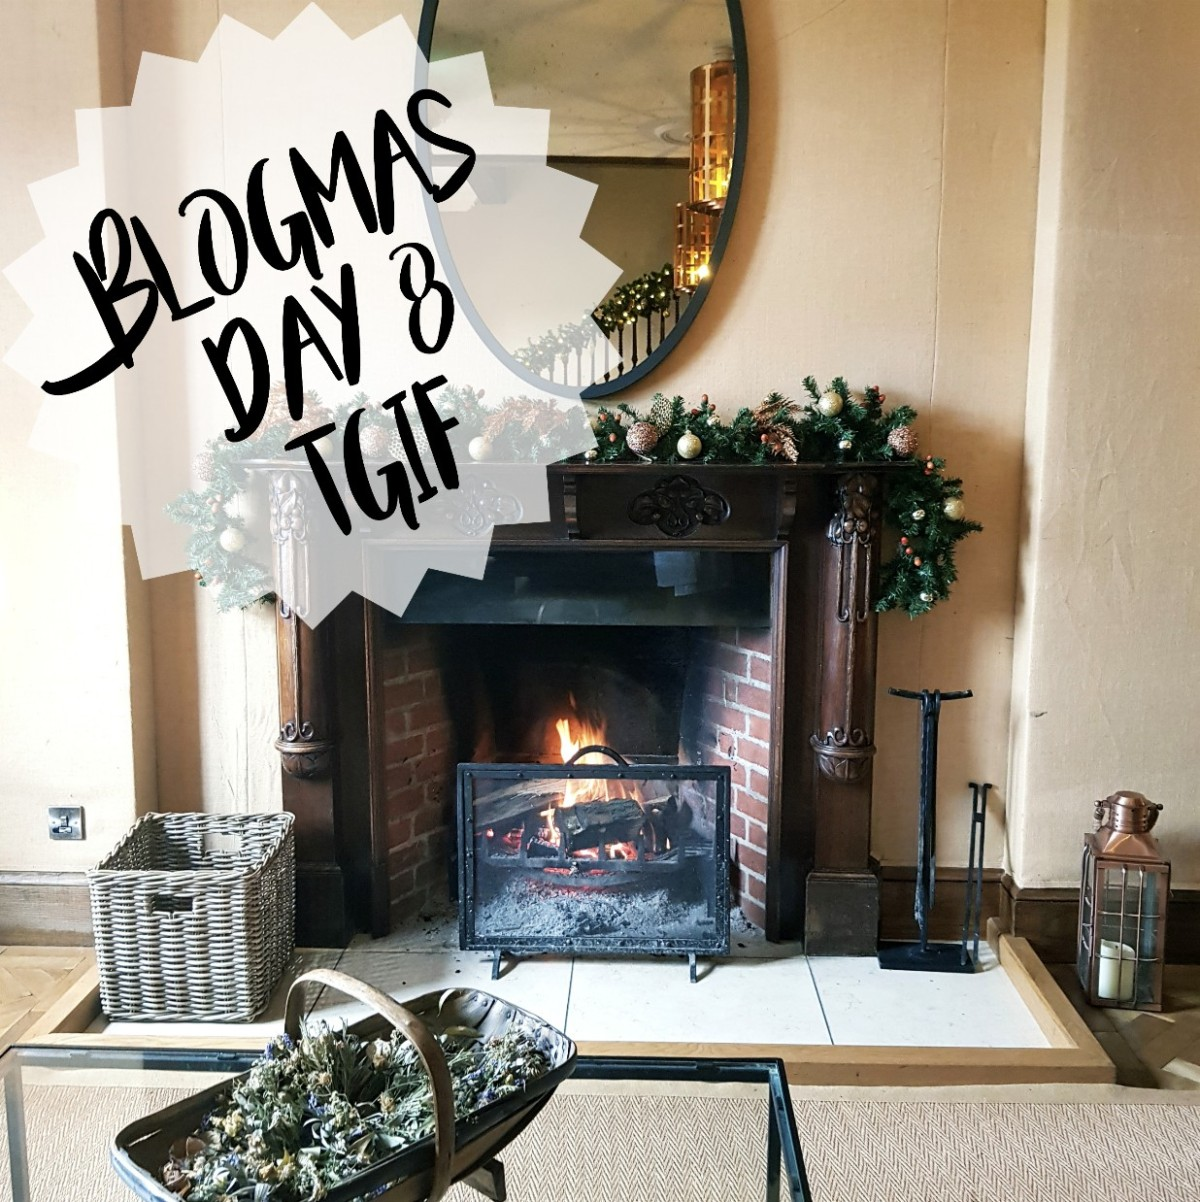 BlogMas, Christmas, BlogMas Day 8 TGIF, Friday, Blog Post, BlogMas Post, Weekend, Champneys Forest Mere, Festive Season, Festive, Holidays, Happy Holidays, Holiday Season, Blog A Book Etc, Fay